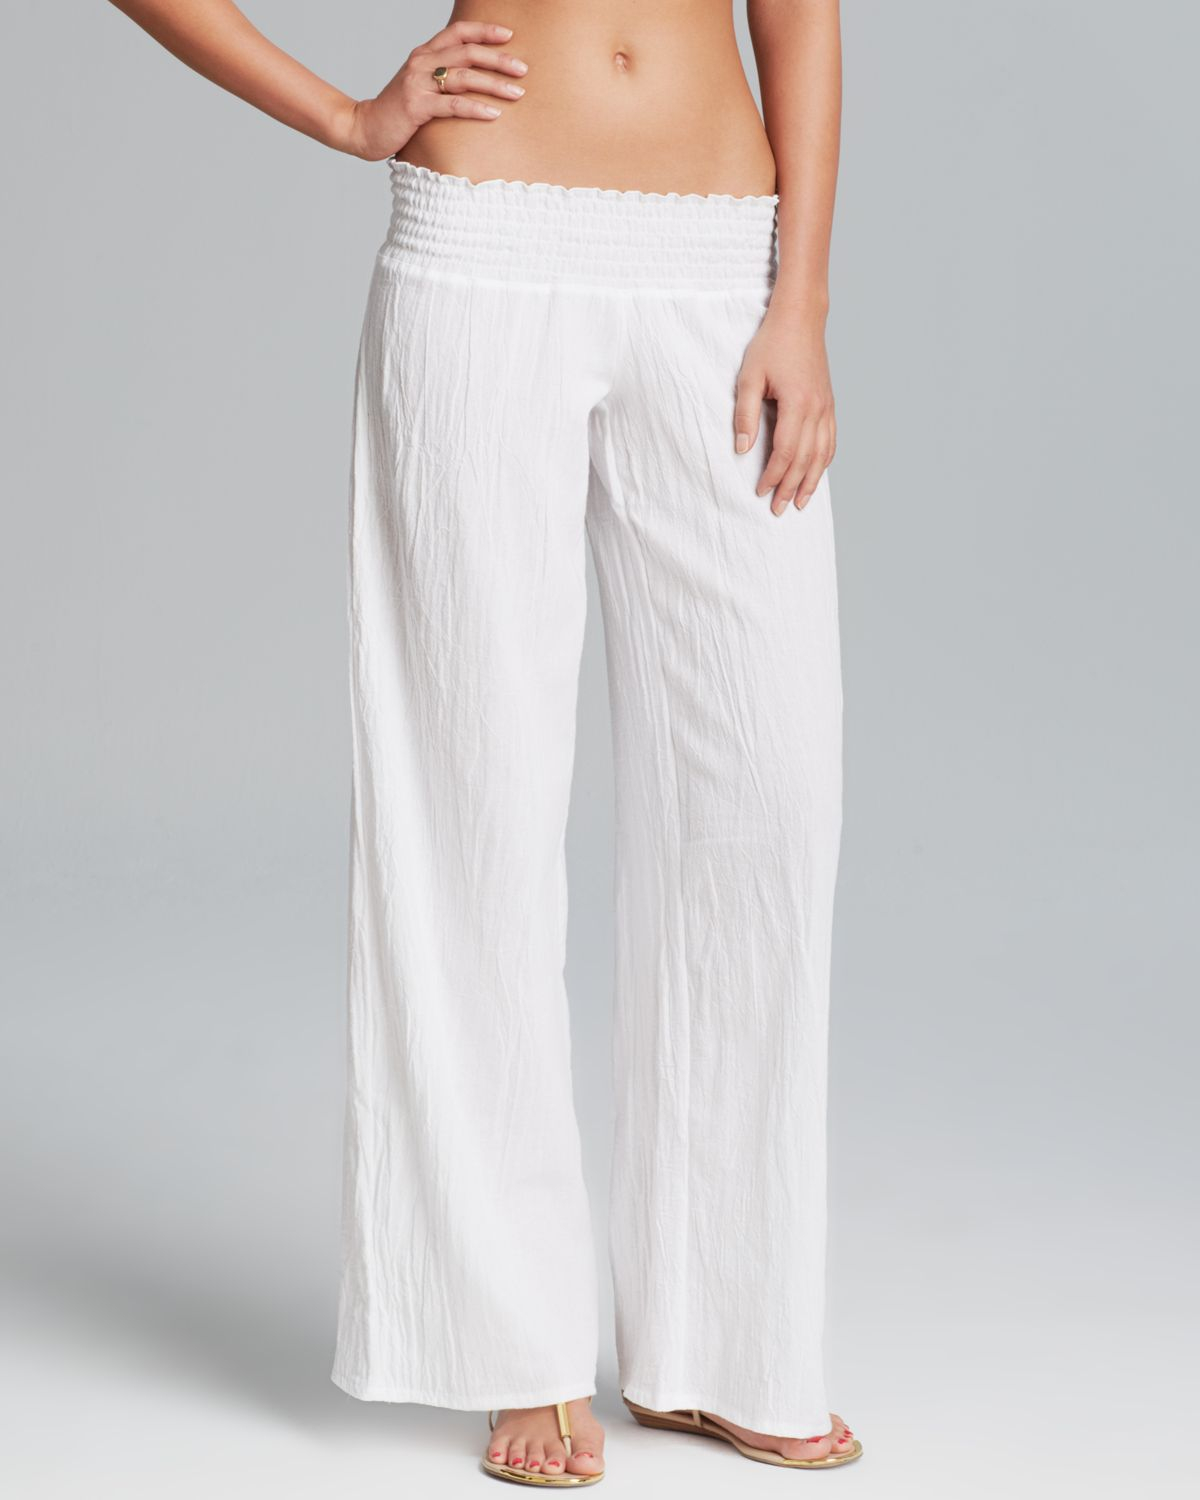 94ce81bf65d Debbie Katz Gauze Swim Cover Up Pants in White - Lyst